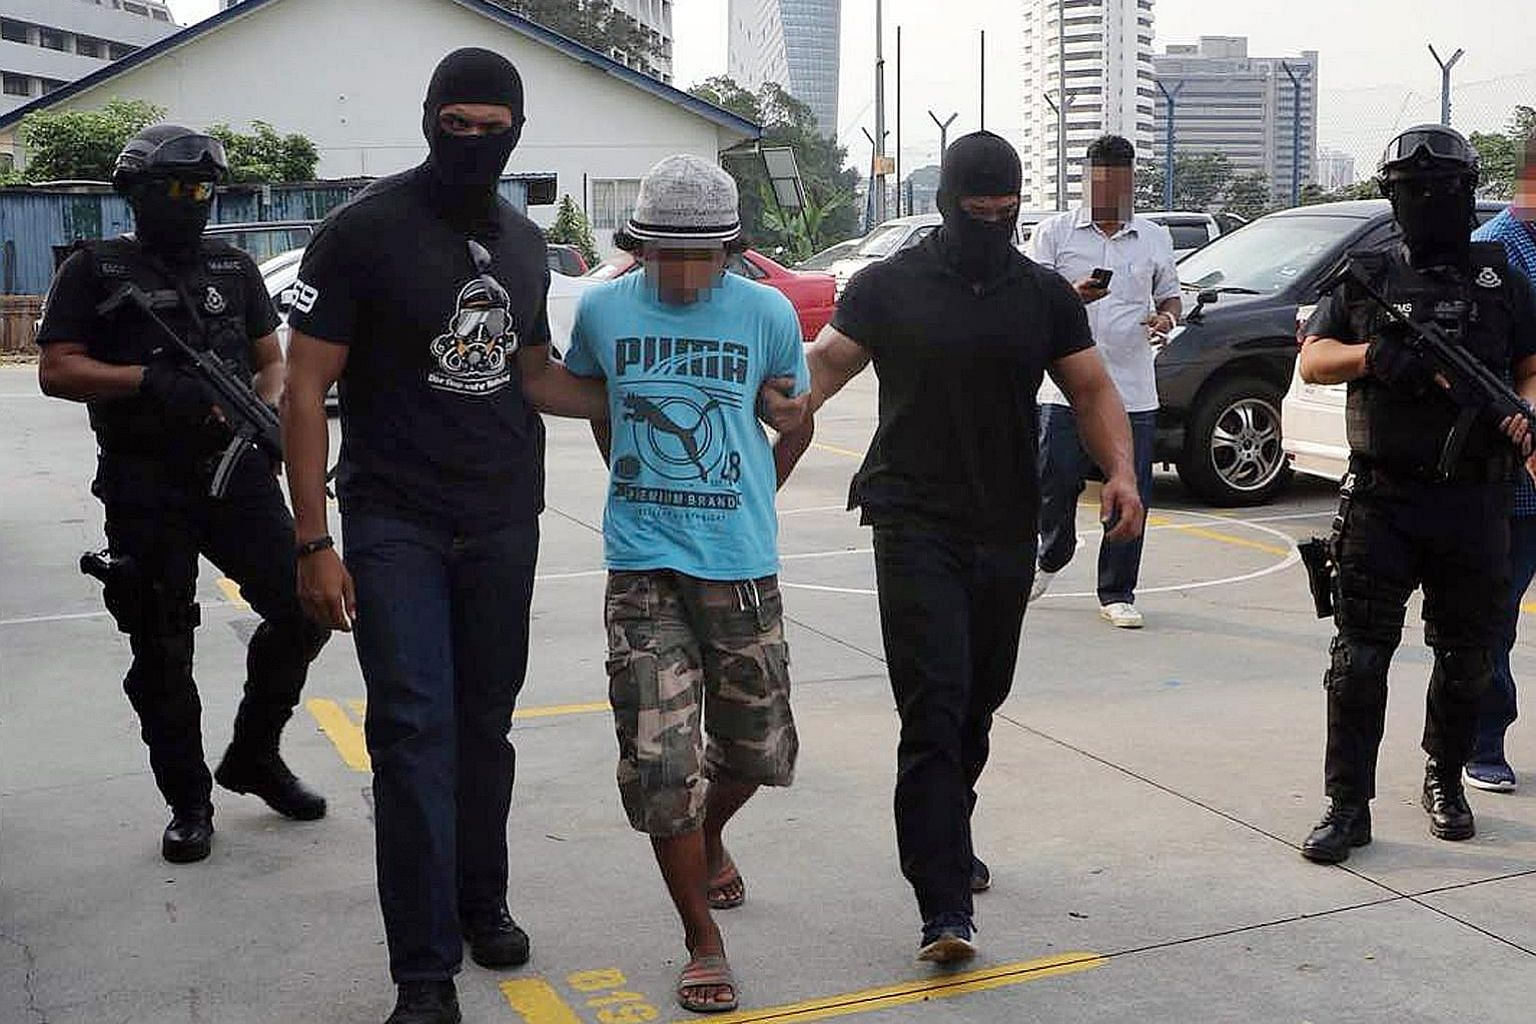 Malaysian police taking the suspected militants into custody. The arrests took place during a special operation in Johor, Terengganu, Selangor and Perak. One suspect had threatened online to kill Sultan Muhammad V, Malaysian Premier Mahathir Mohamad